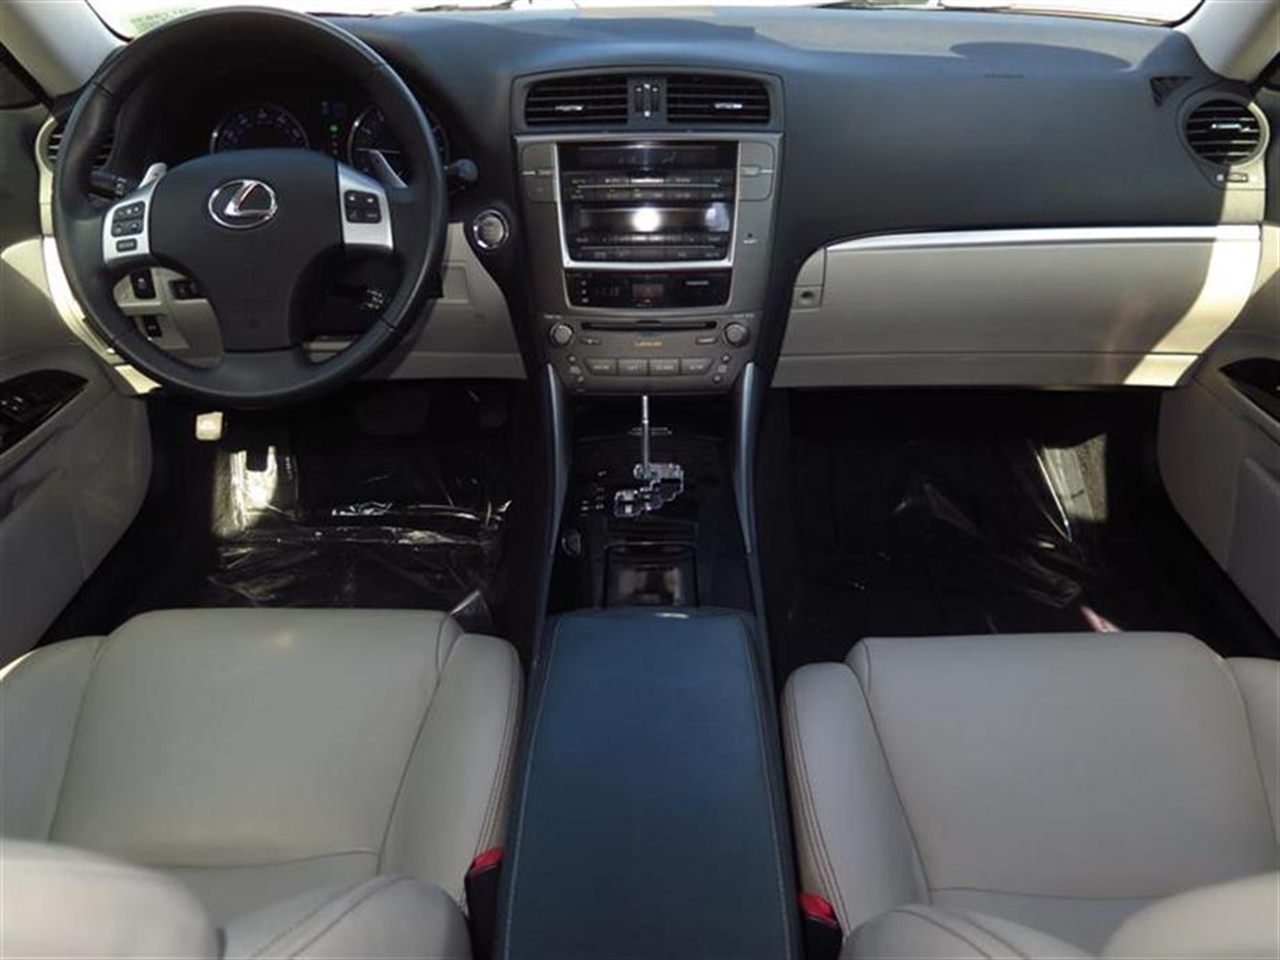 2012 LEXUS IS 250 4dr Sport Sdn Auto RWD 43463 miles 2 front2 rear articulated assist grips